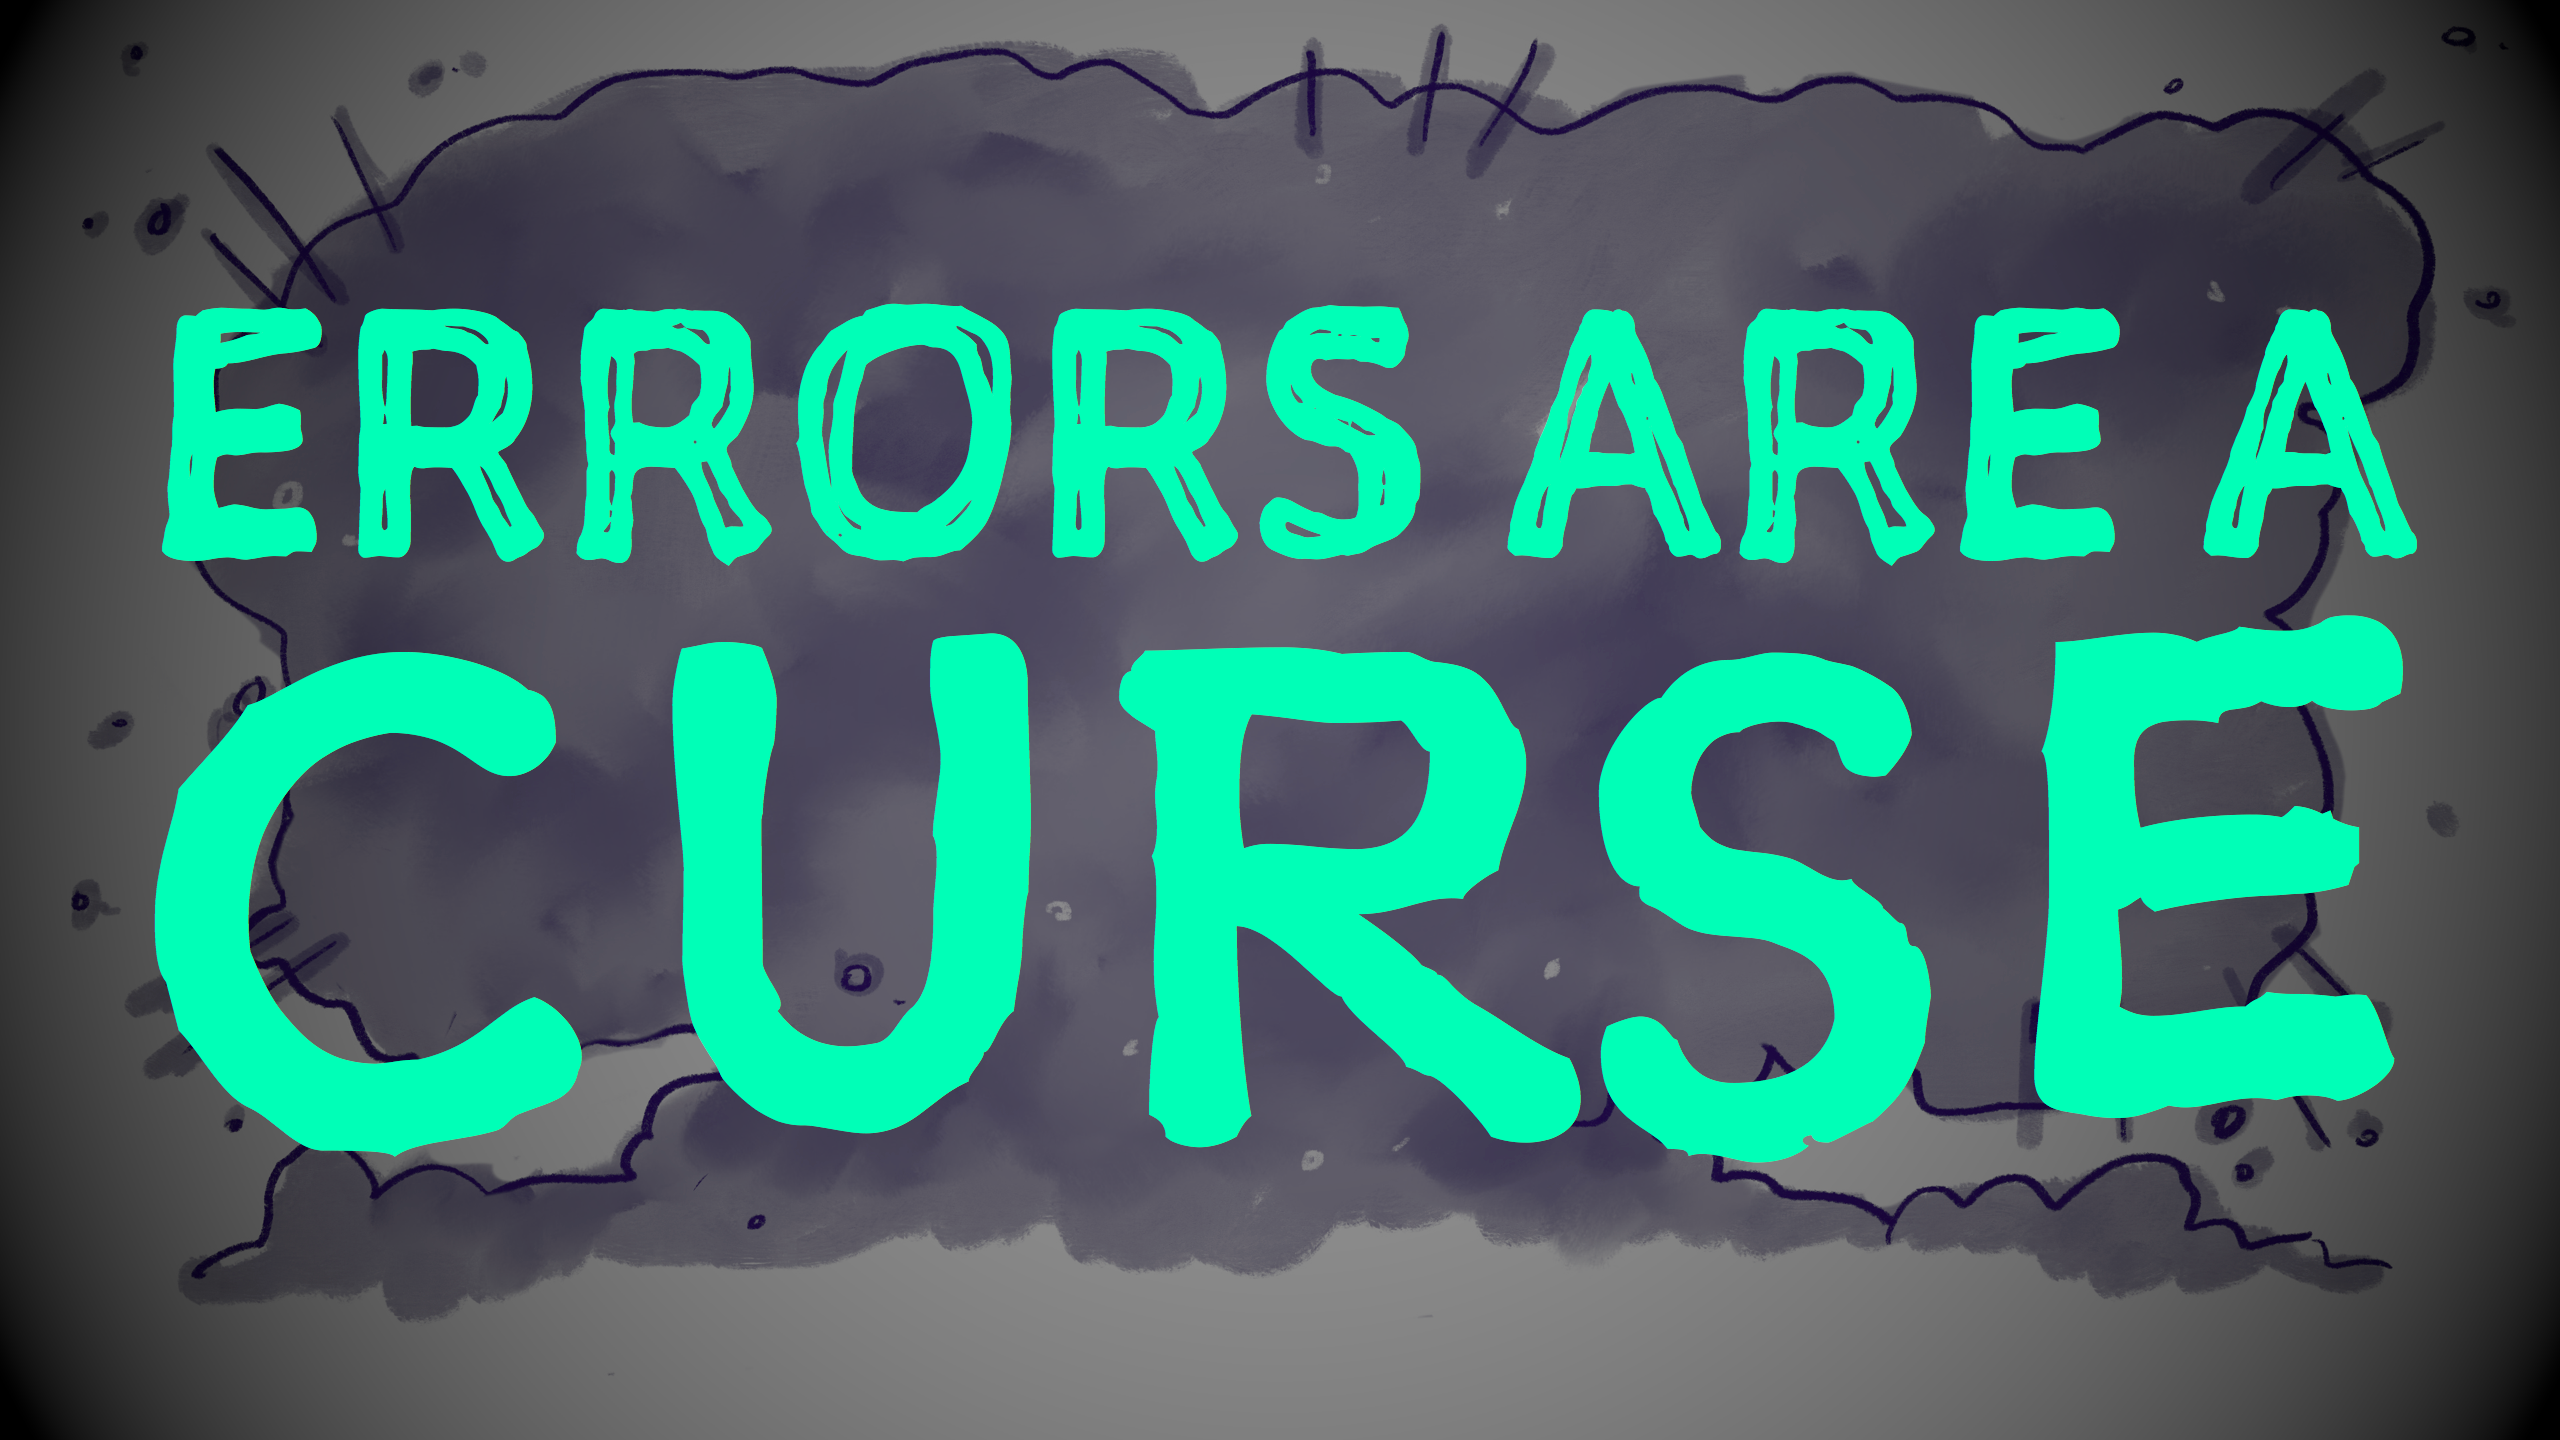 'Errors are a curse' written in all caps in green on a gray background.